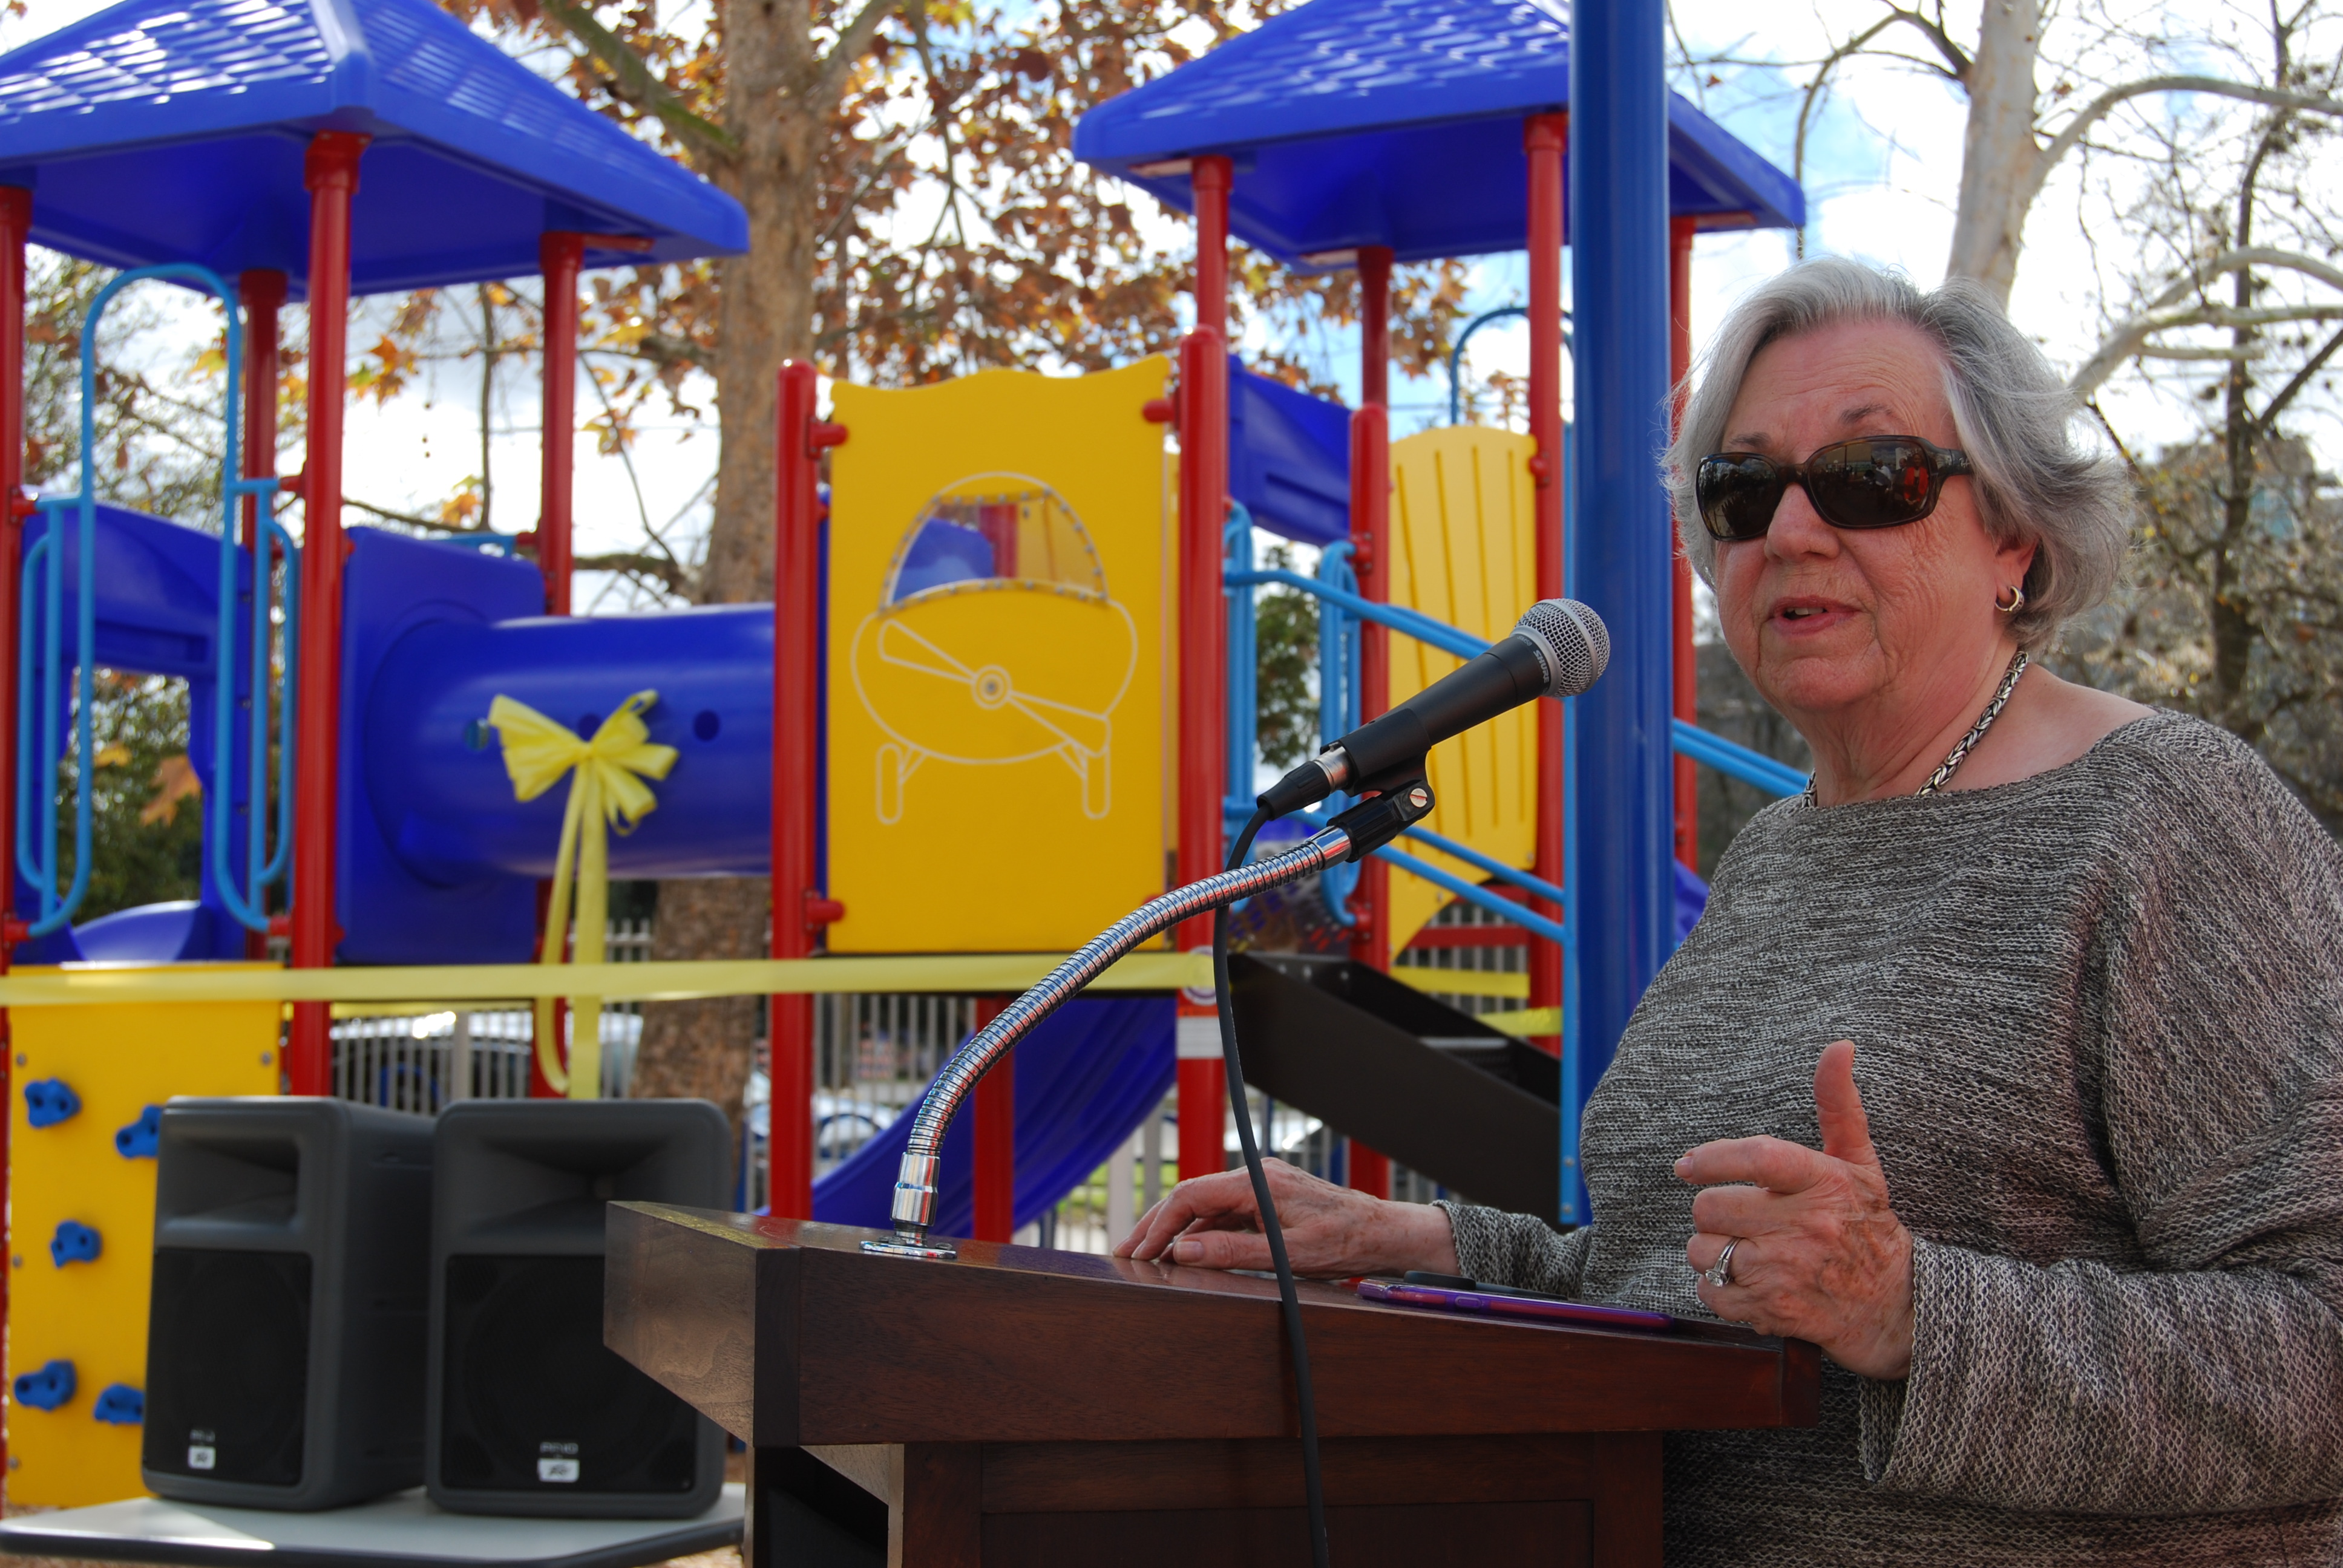 Speaker at Playground Unveiling